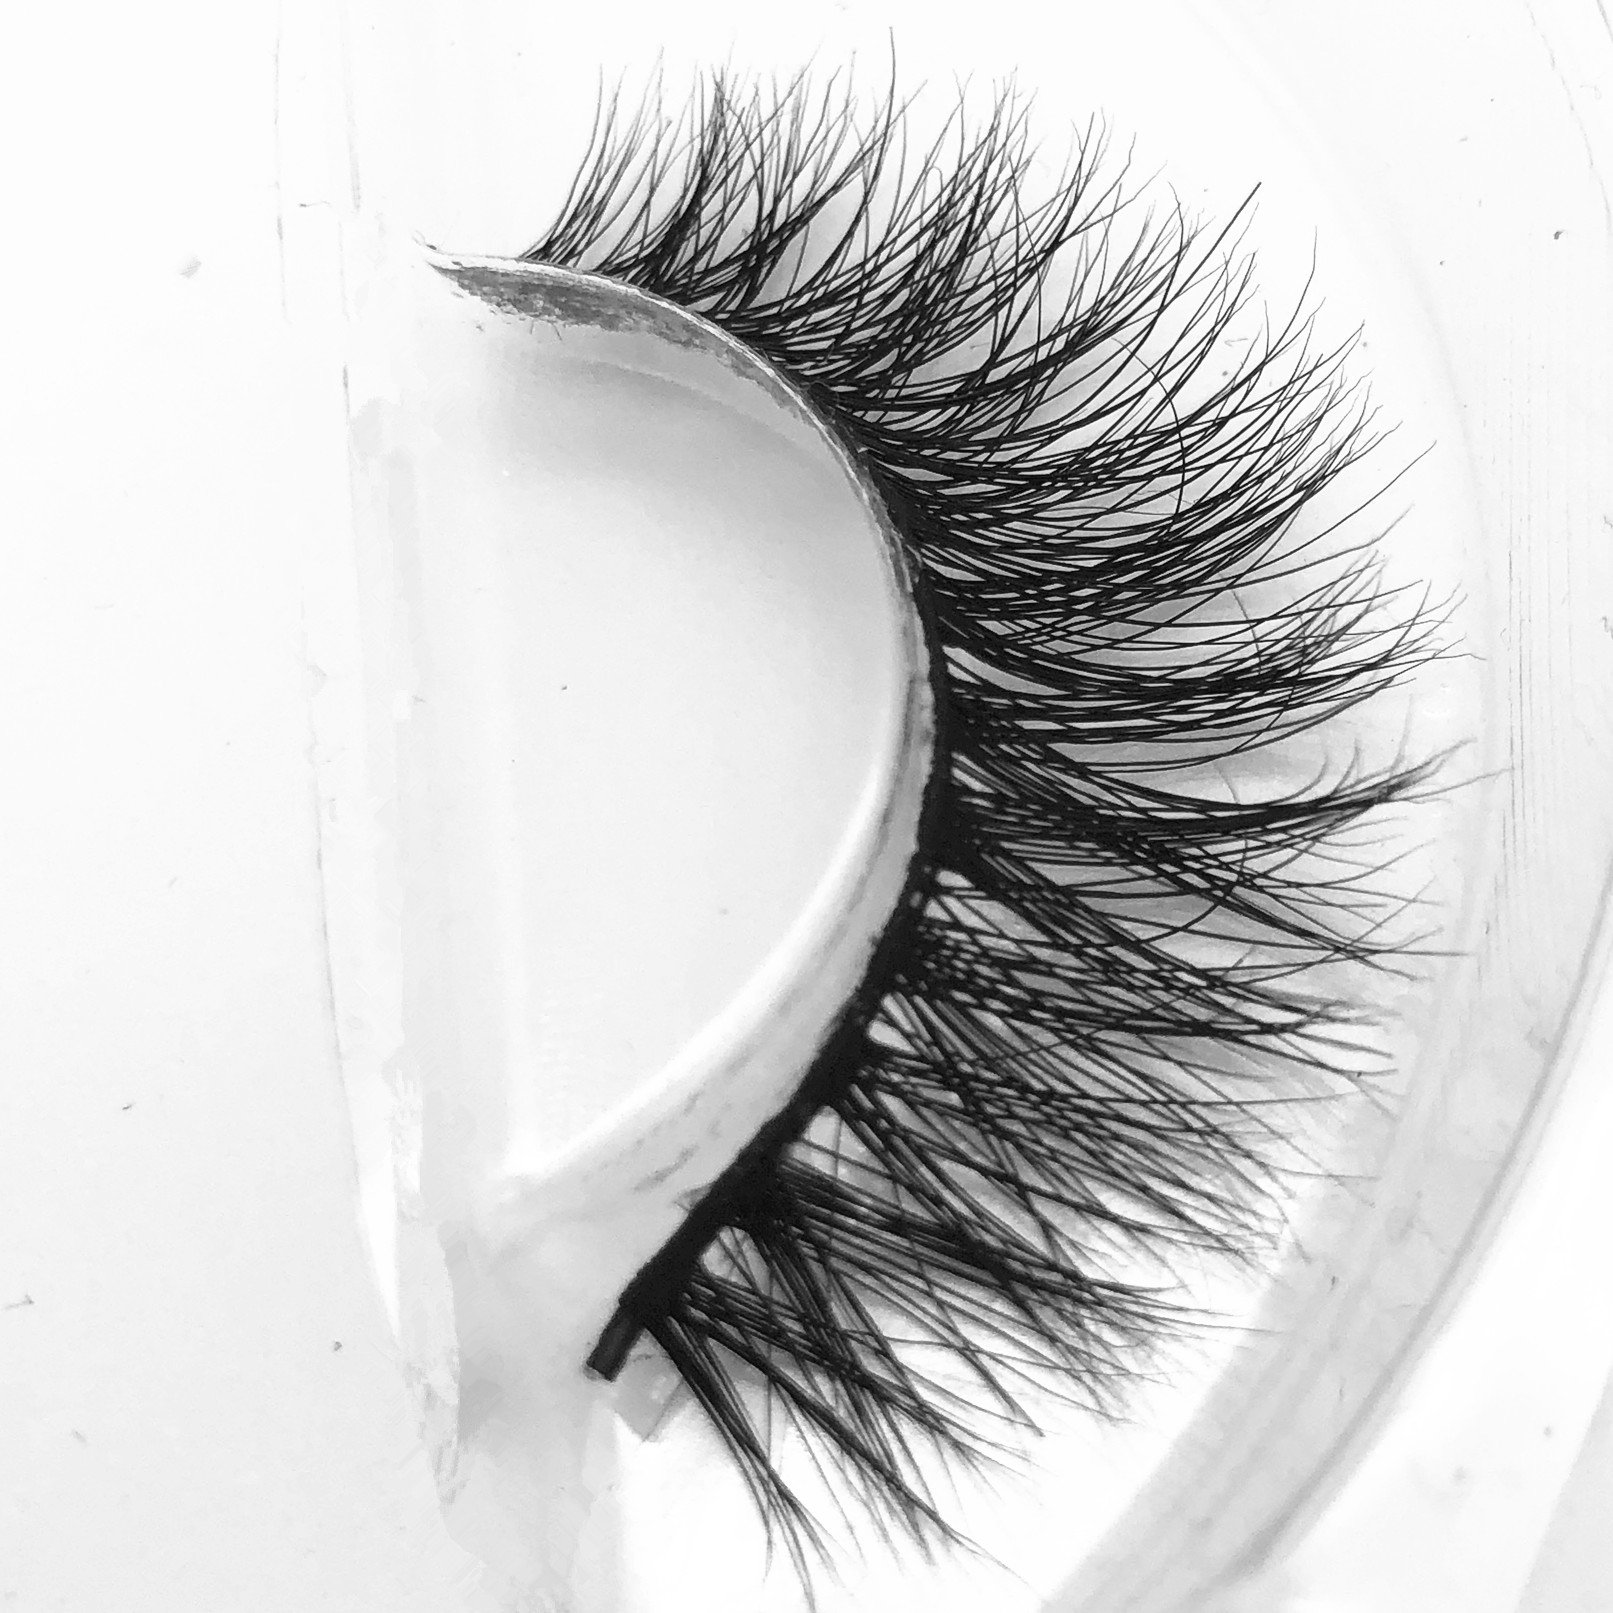 3D36 Lahses1 pair 3D Handmade Thick Mink Eyelashes Natural False Eyelashes for Beauty Makeup fake Eye Lashes Extension (3D16)